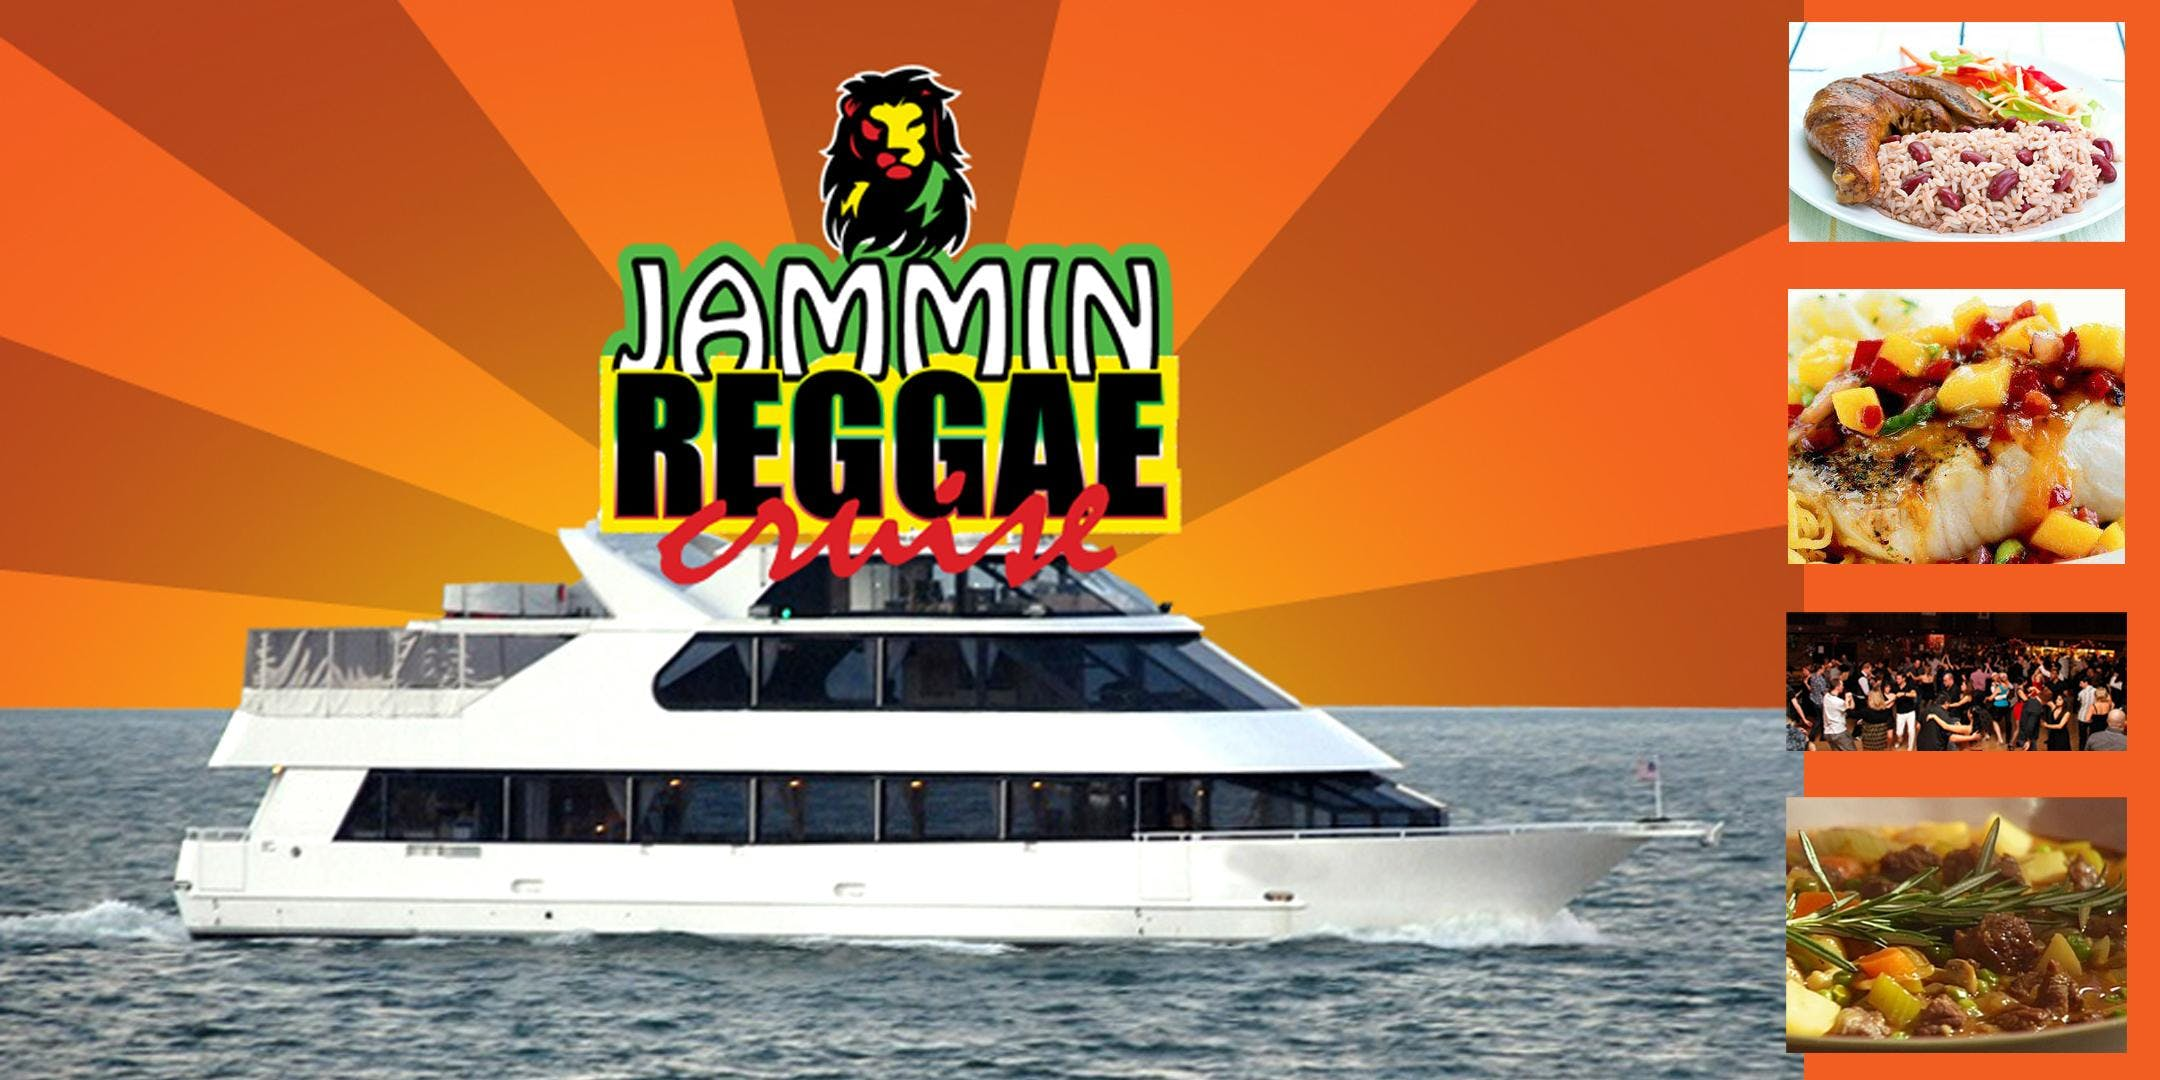 Jammin' Reggae Cruise November 16th @8:00 PM